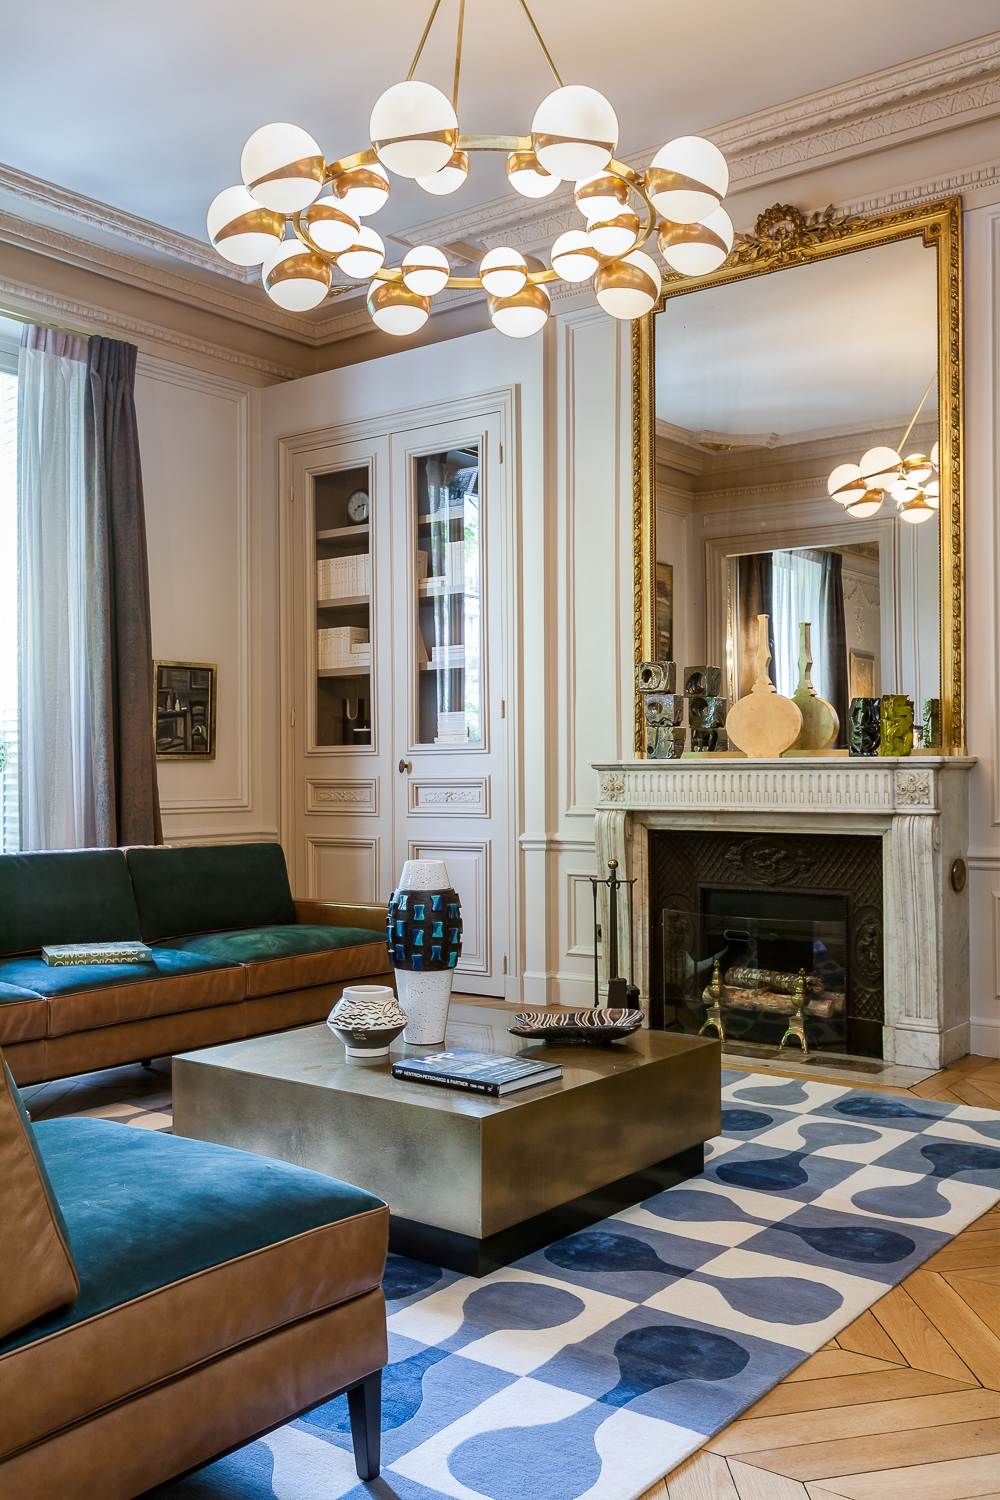 Modern Luxury Apartment Interior Design by Mathieu Fiol   RooHome   Designs & Plans